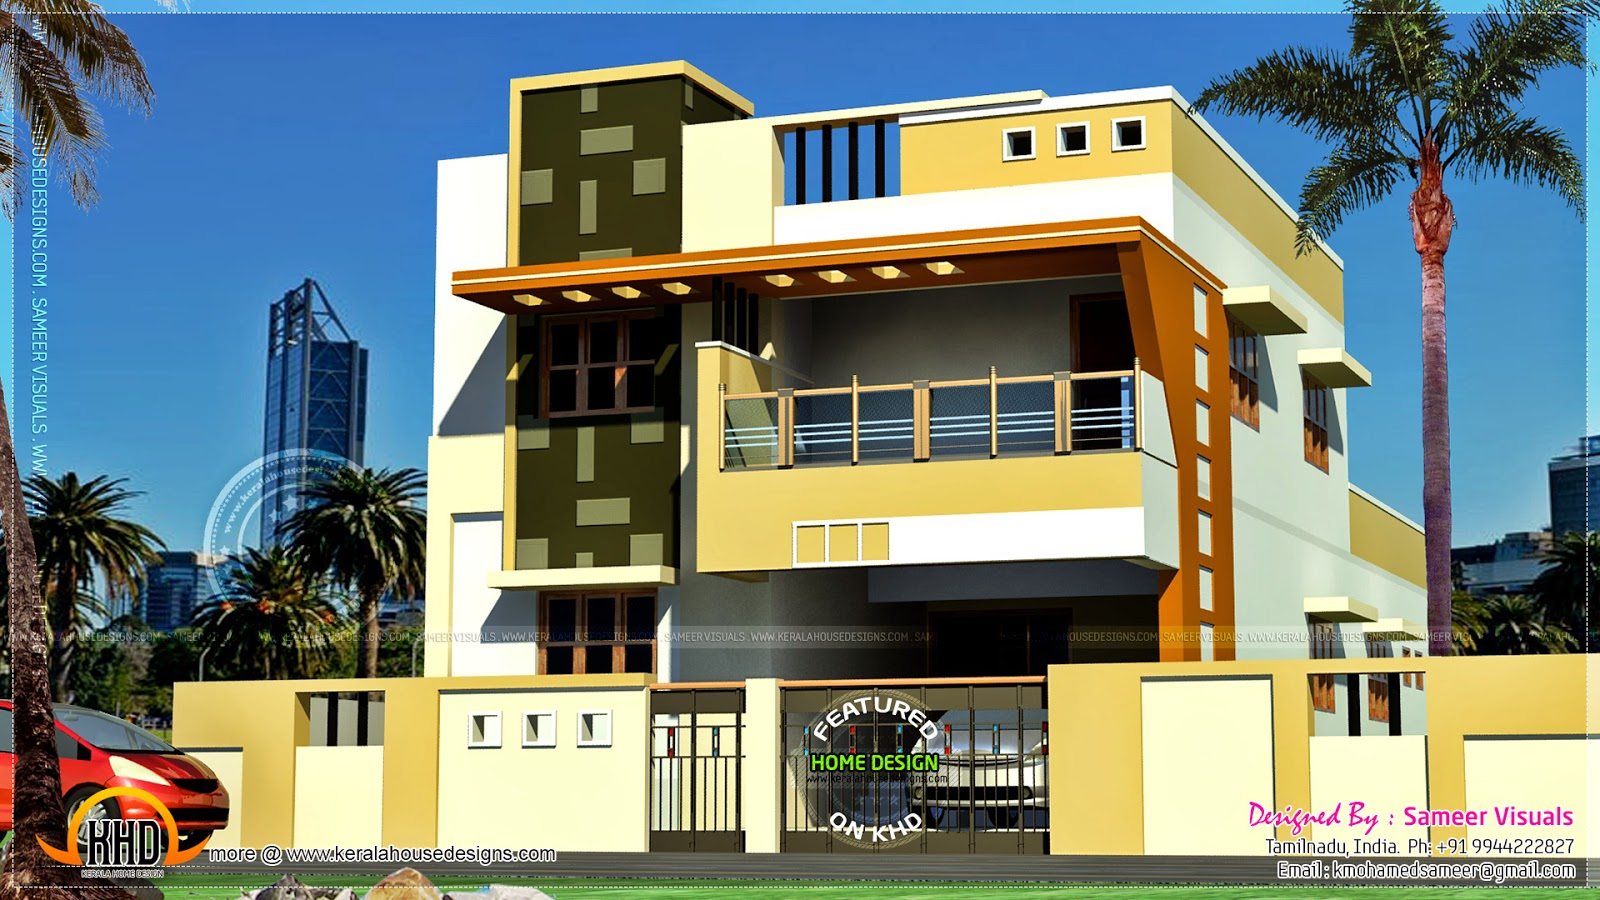 Modern south indian house design kerala home design and for Indian house plans for free